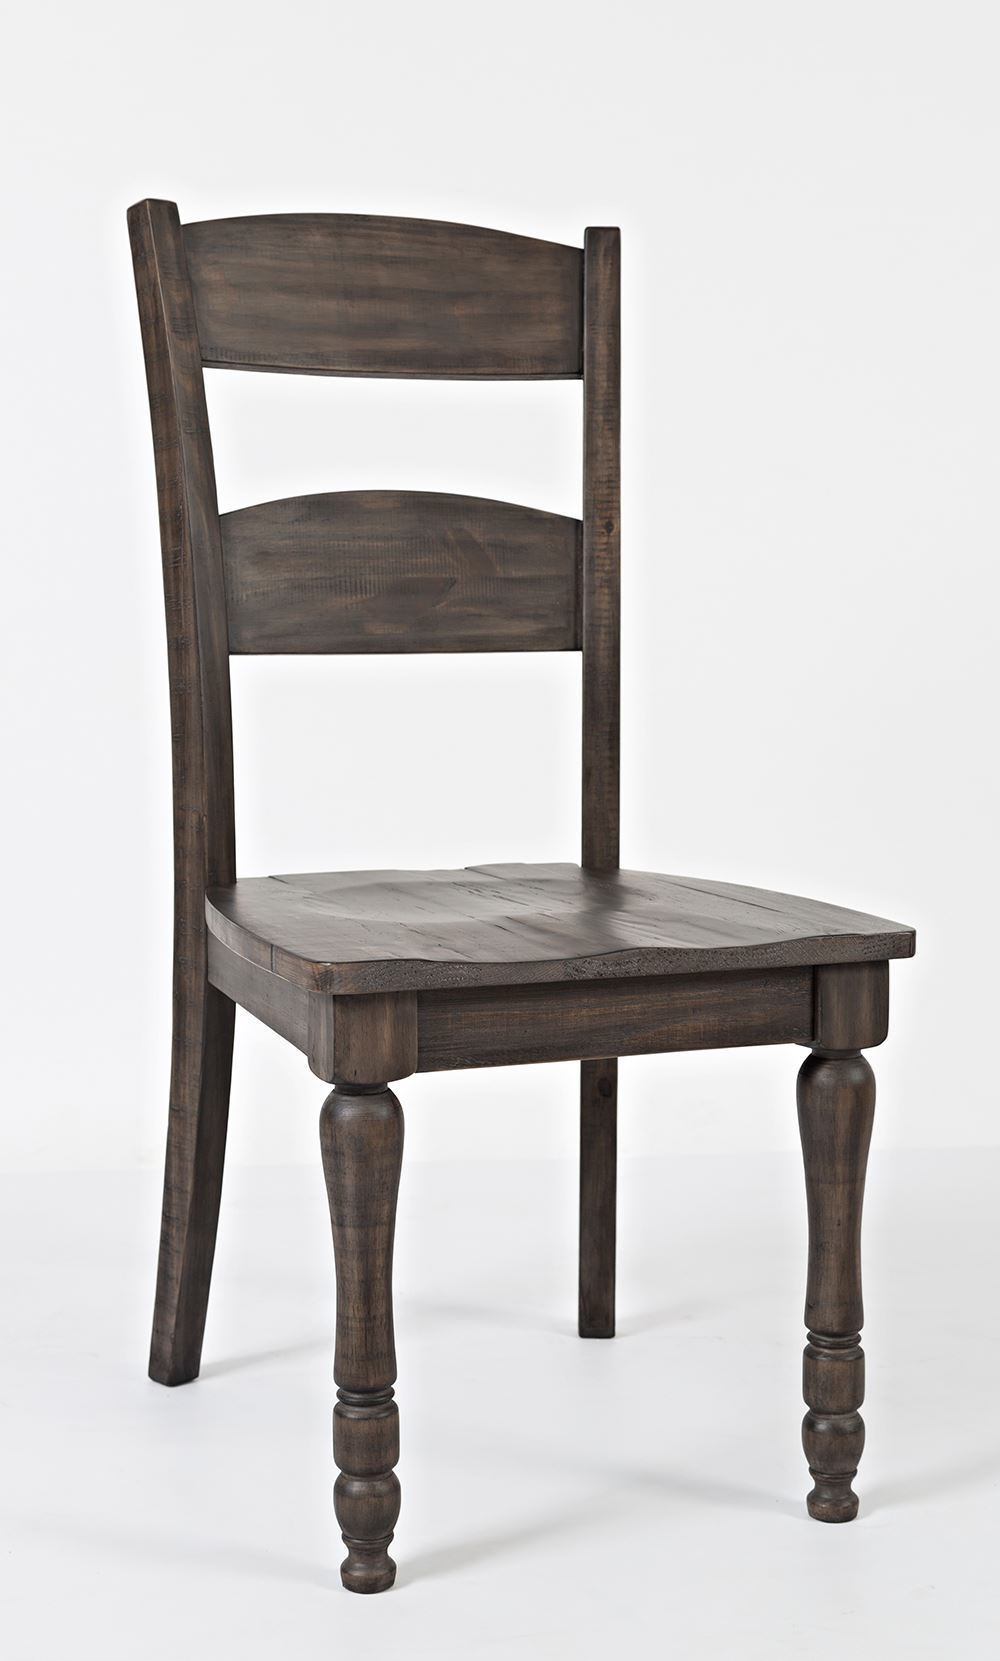 Picture of Madison Barnwood Ladderback Chair